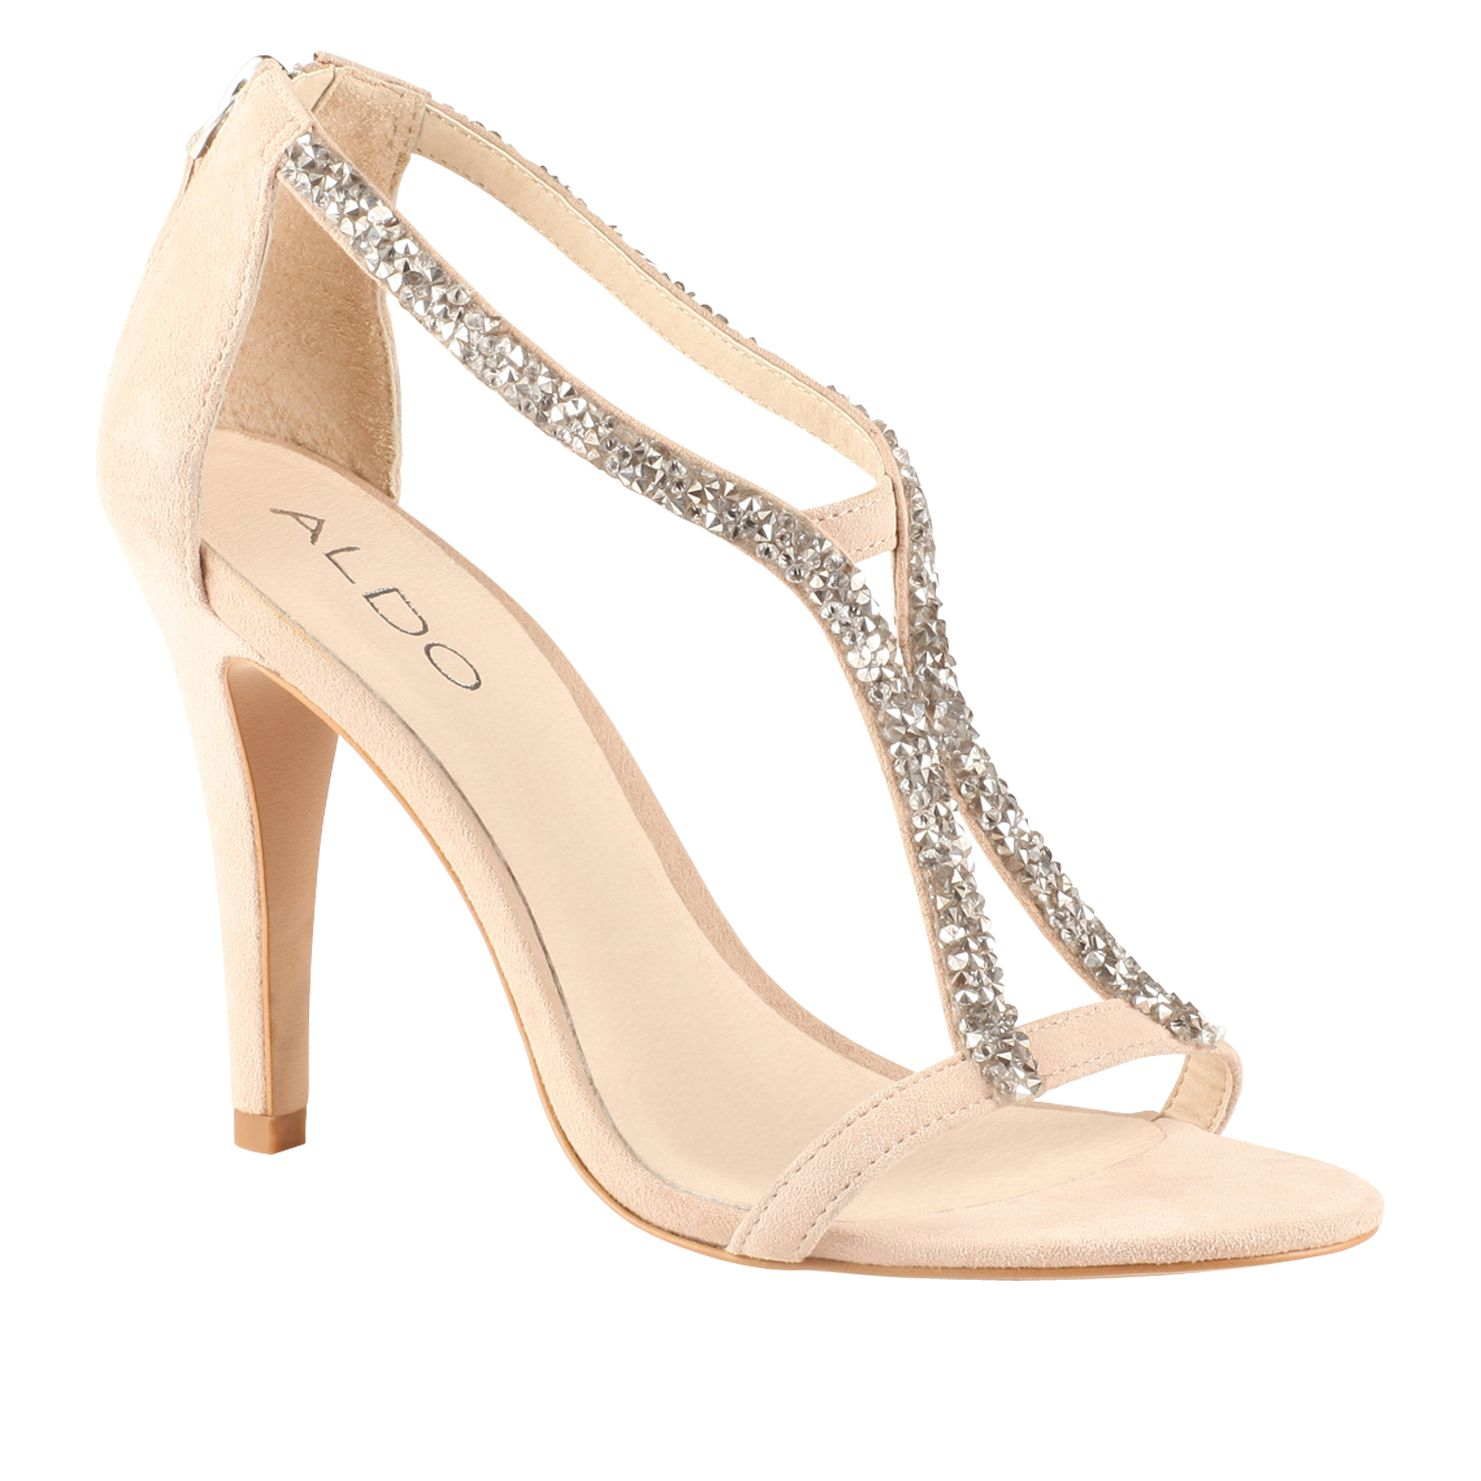 Balanello embellished court sandals